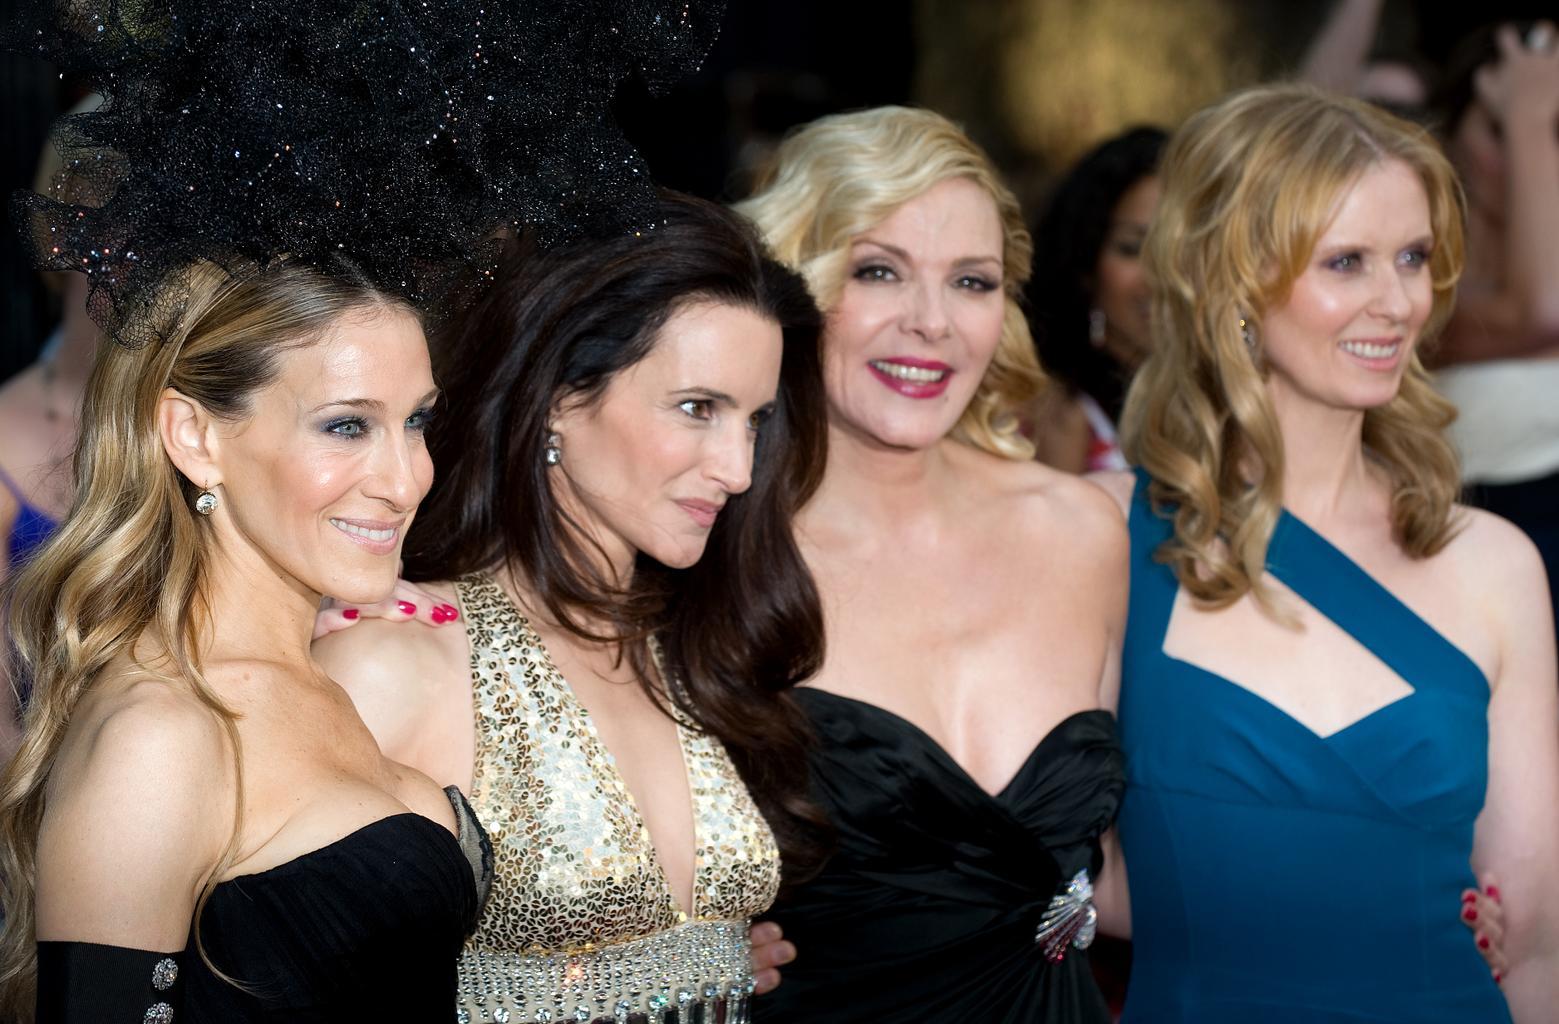 Kim cattrall in sex and the city